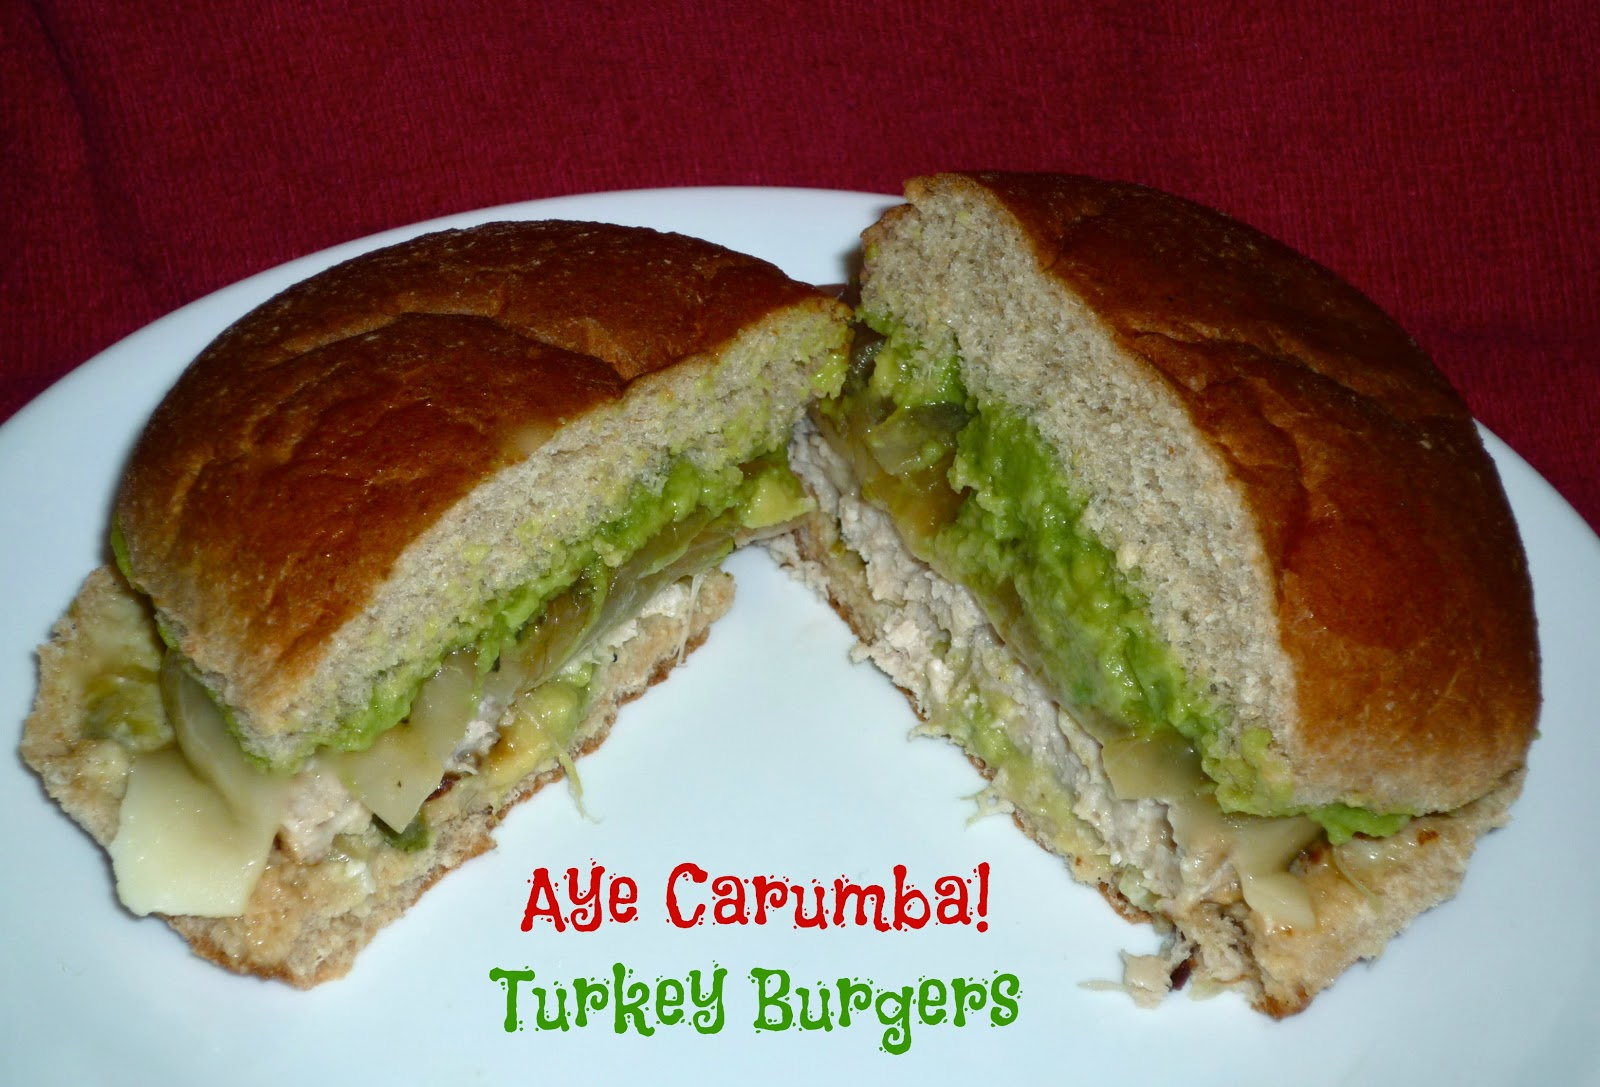 ... and Jennie-O Prize Pack...Featuring Aye Carumba! Turkey Burgers